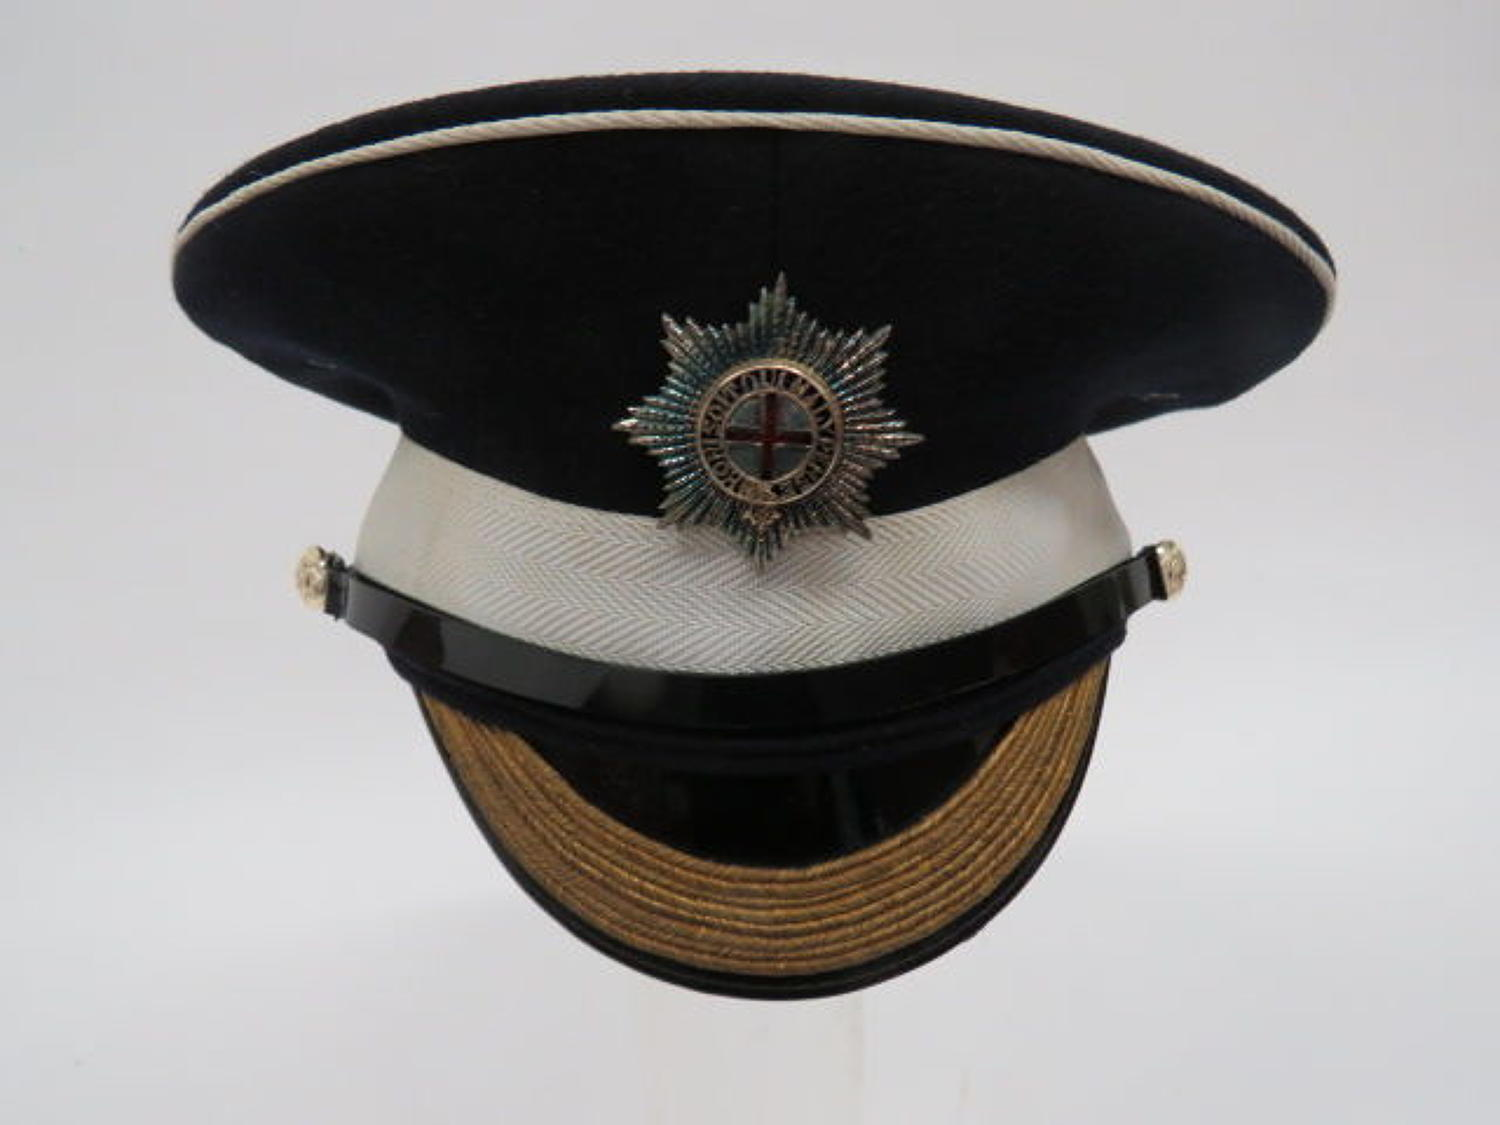 Current Coldstream Guards Senior N.C.Os Dress Cap